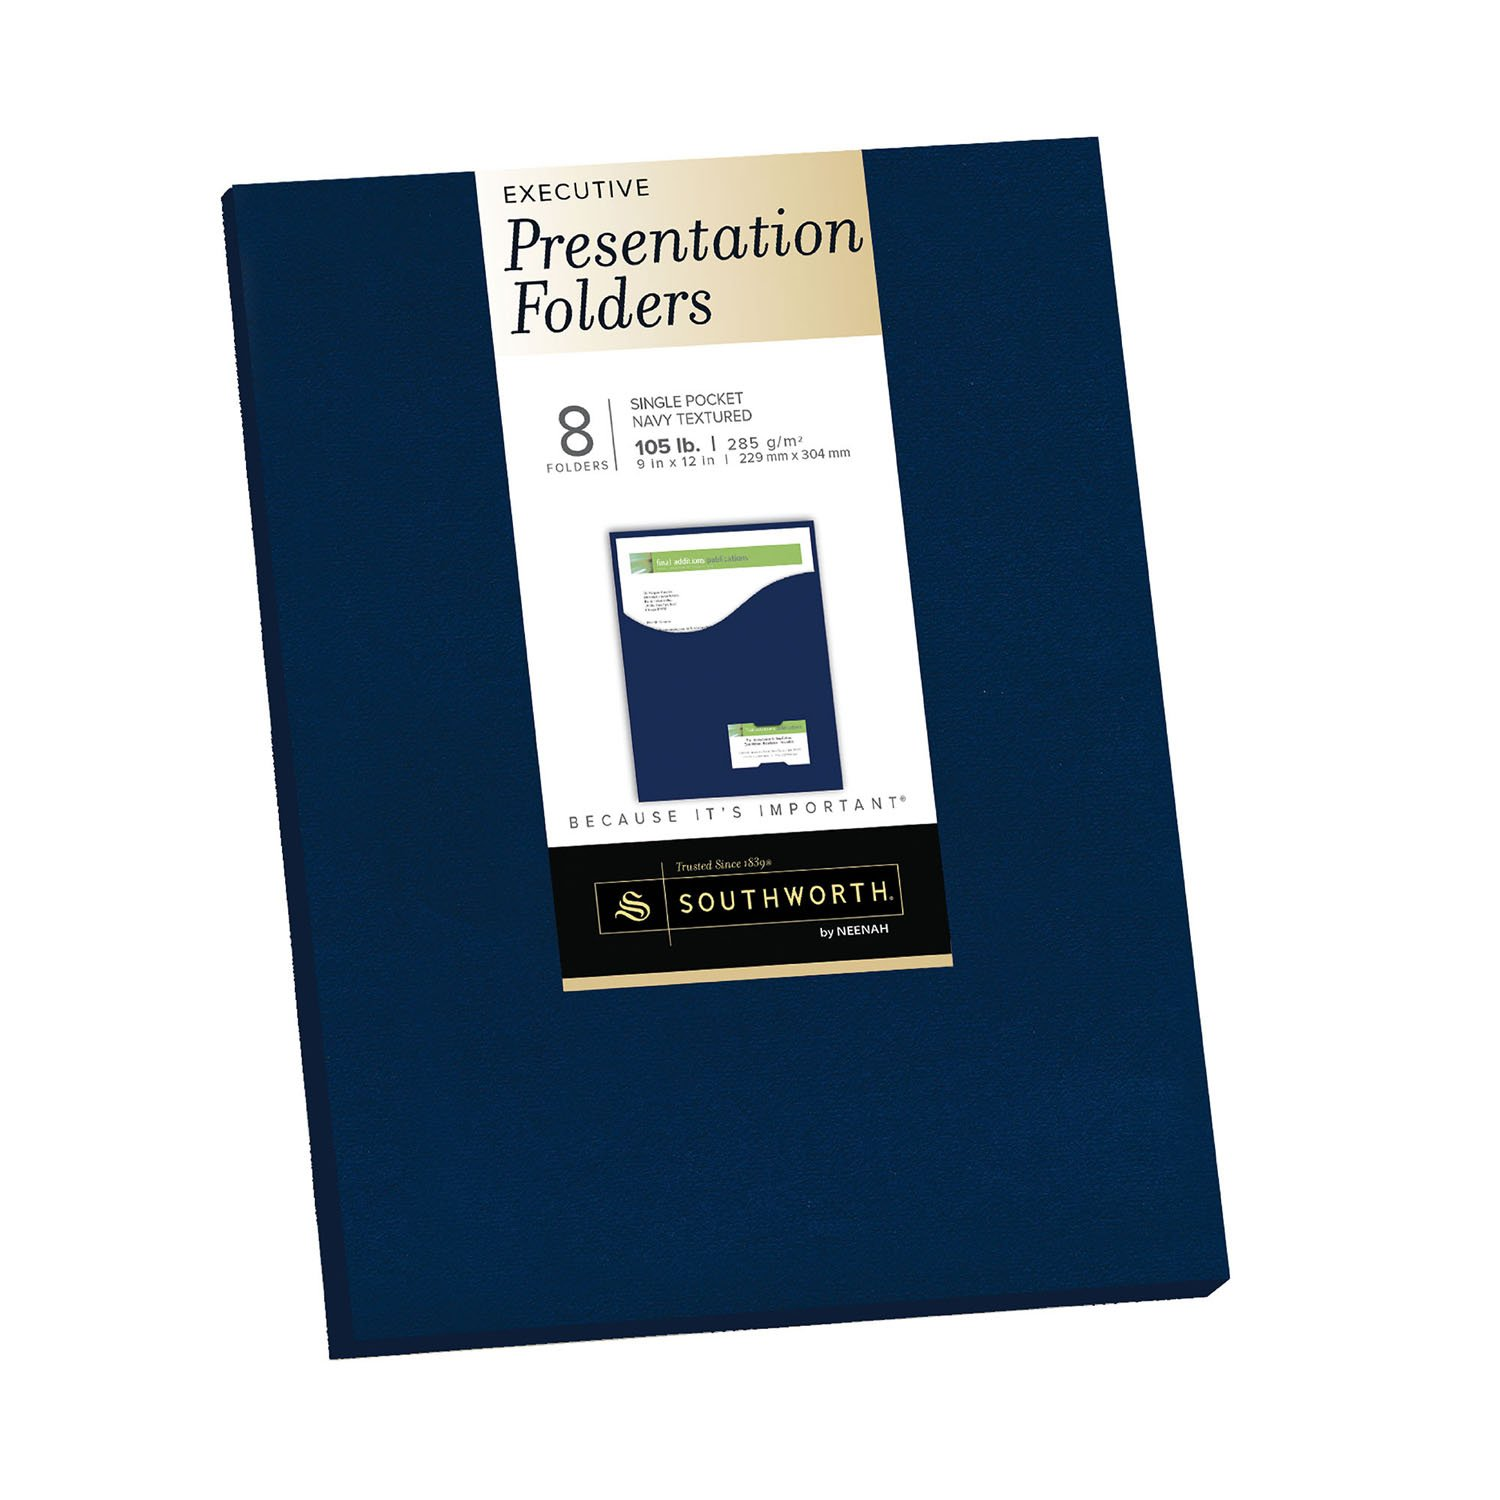 Amazoncom Southworth Resume Presentation Folders 9 x 12 105